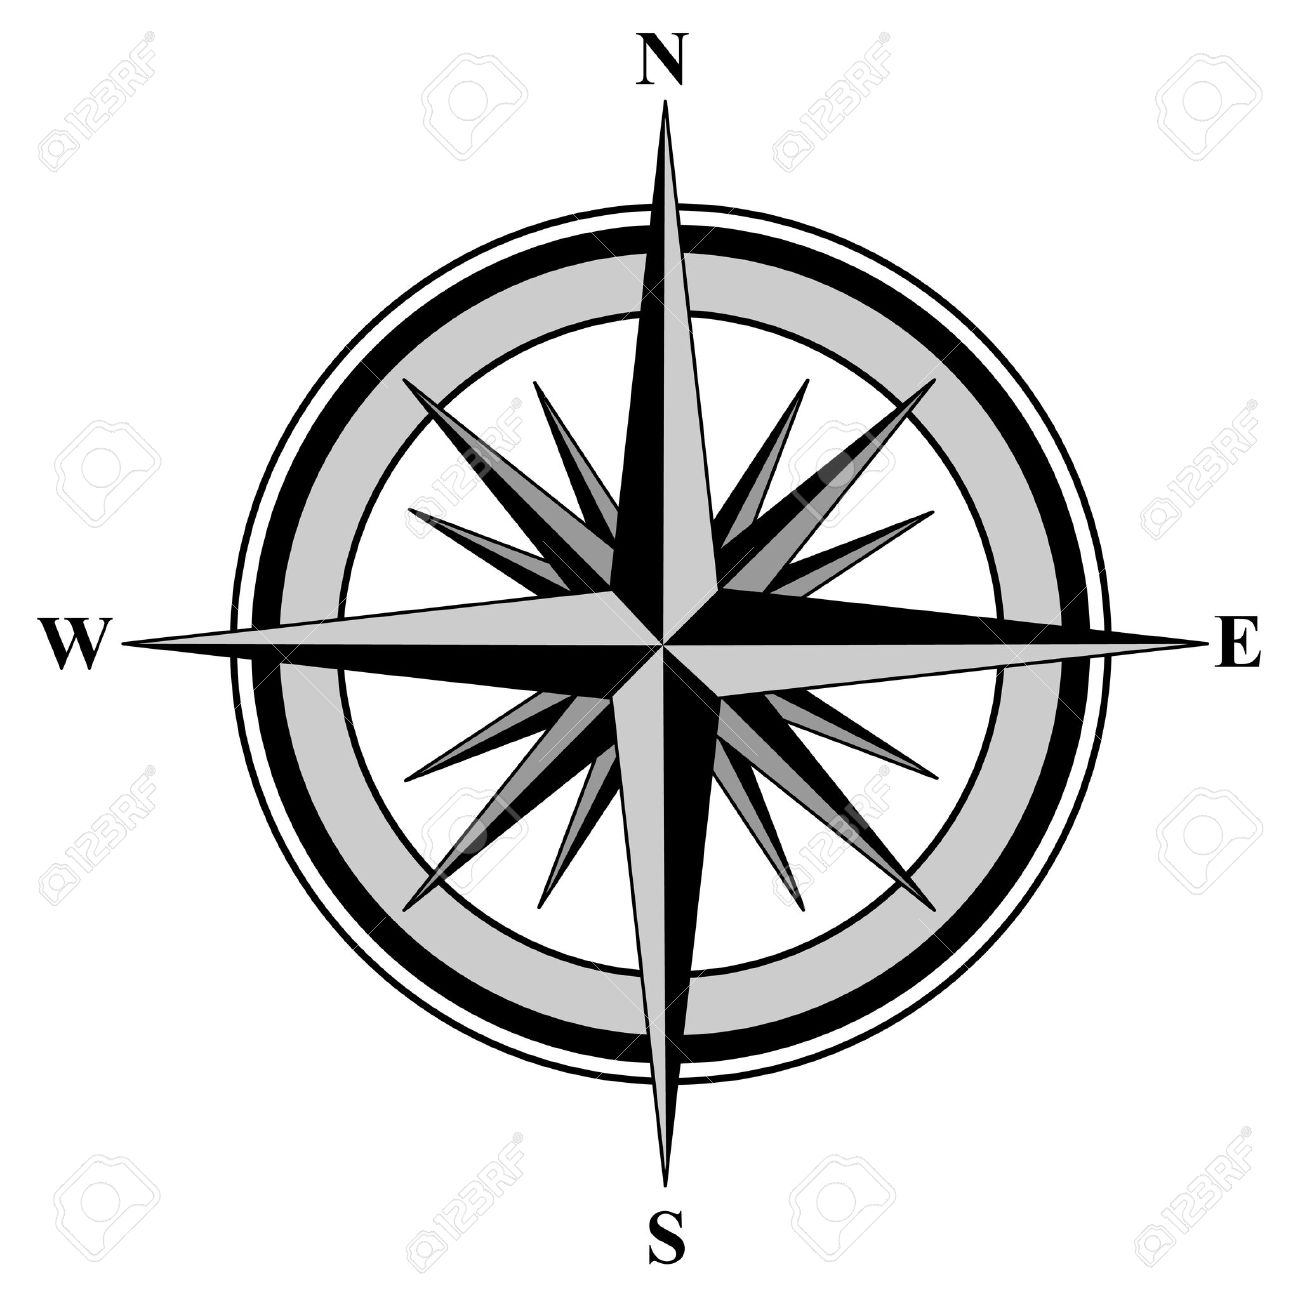 Picture Of Compass Rose Free Download Best Picture Of